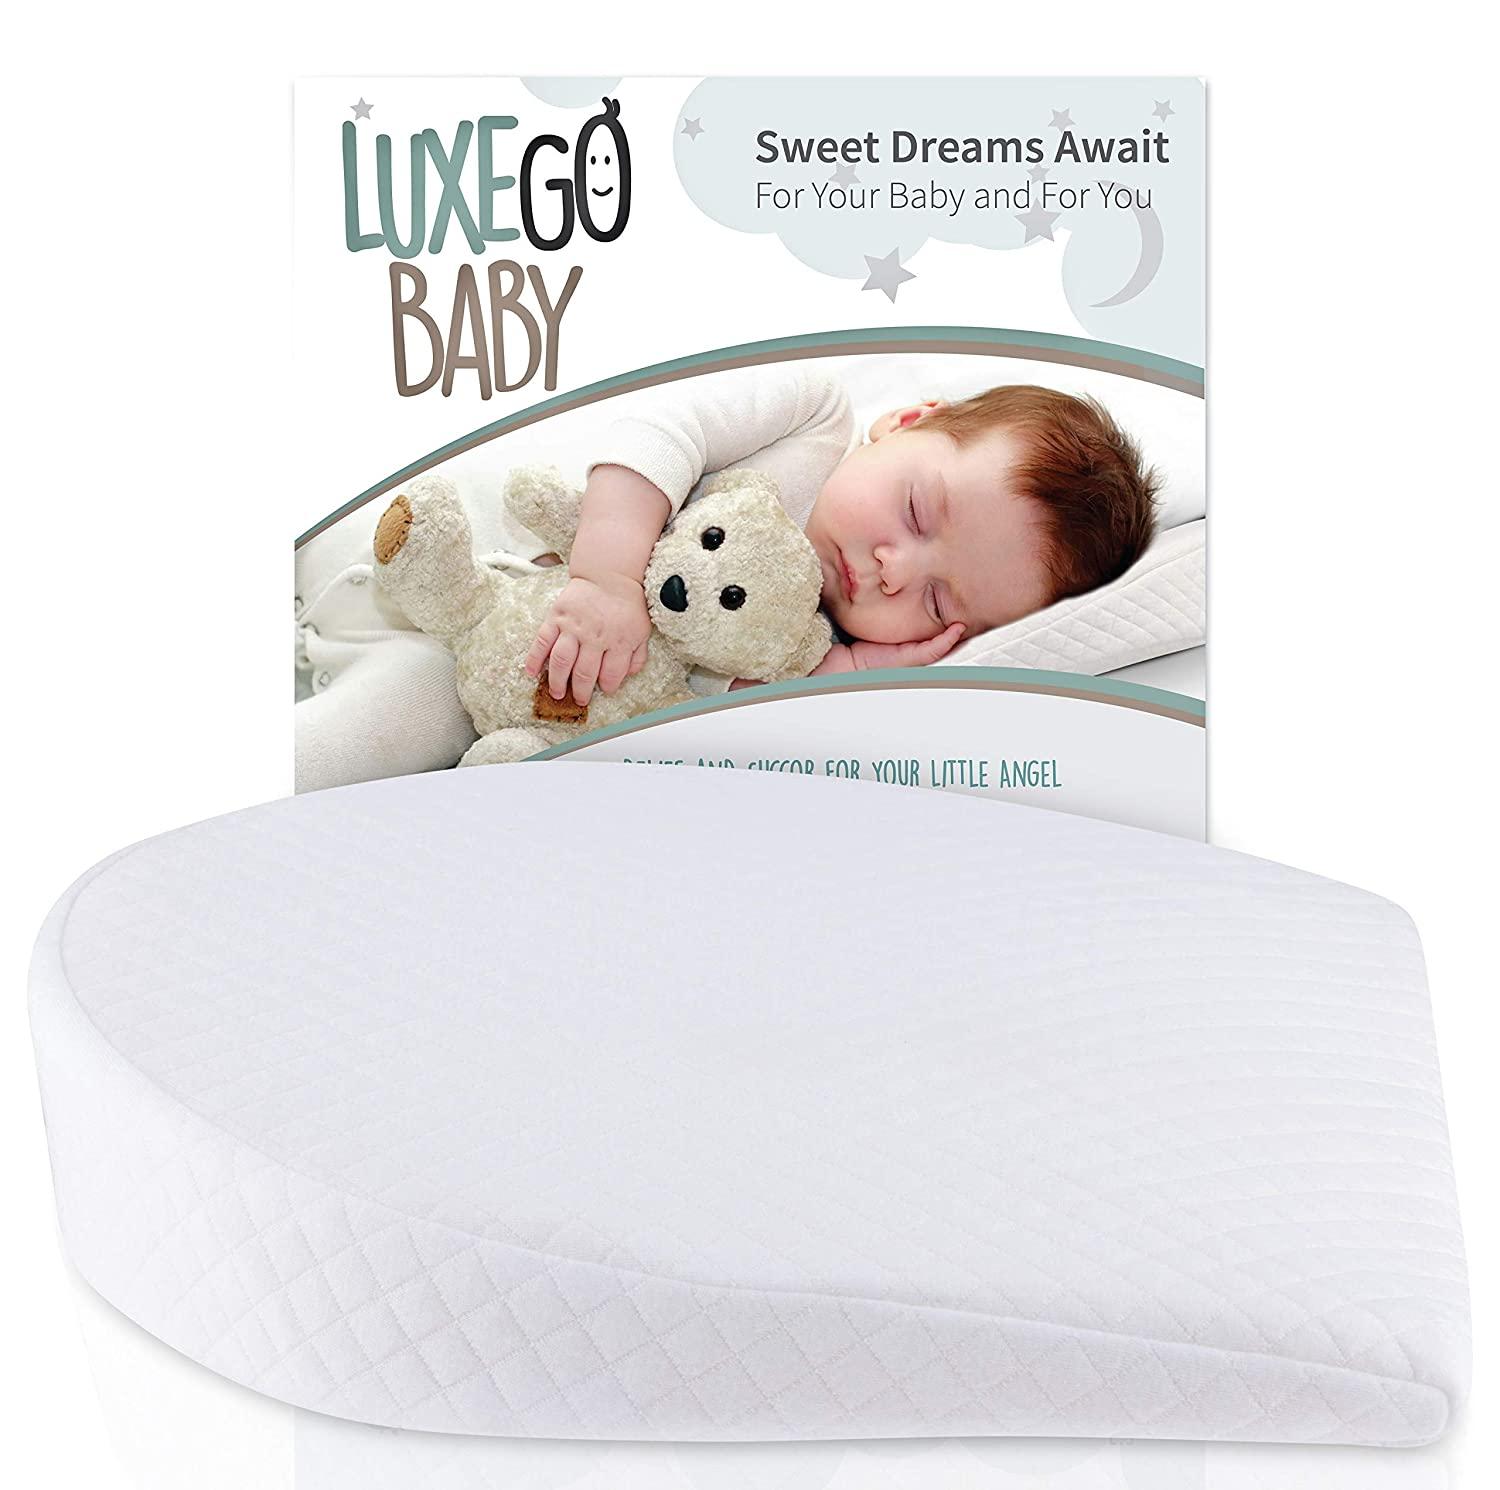 Amazon.com: Universal Bassinet Wedge for Reflux Baby Pillow ...